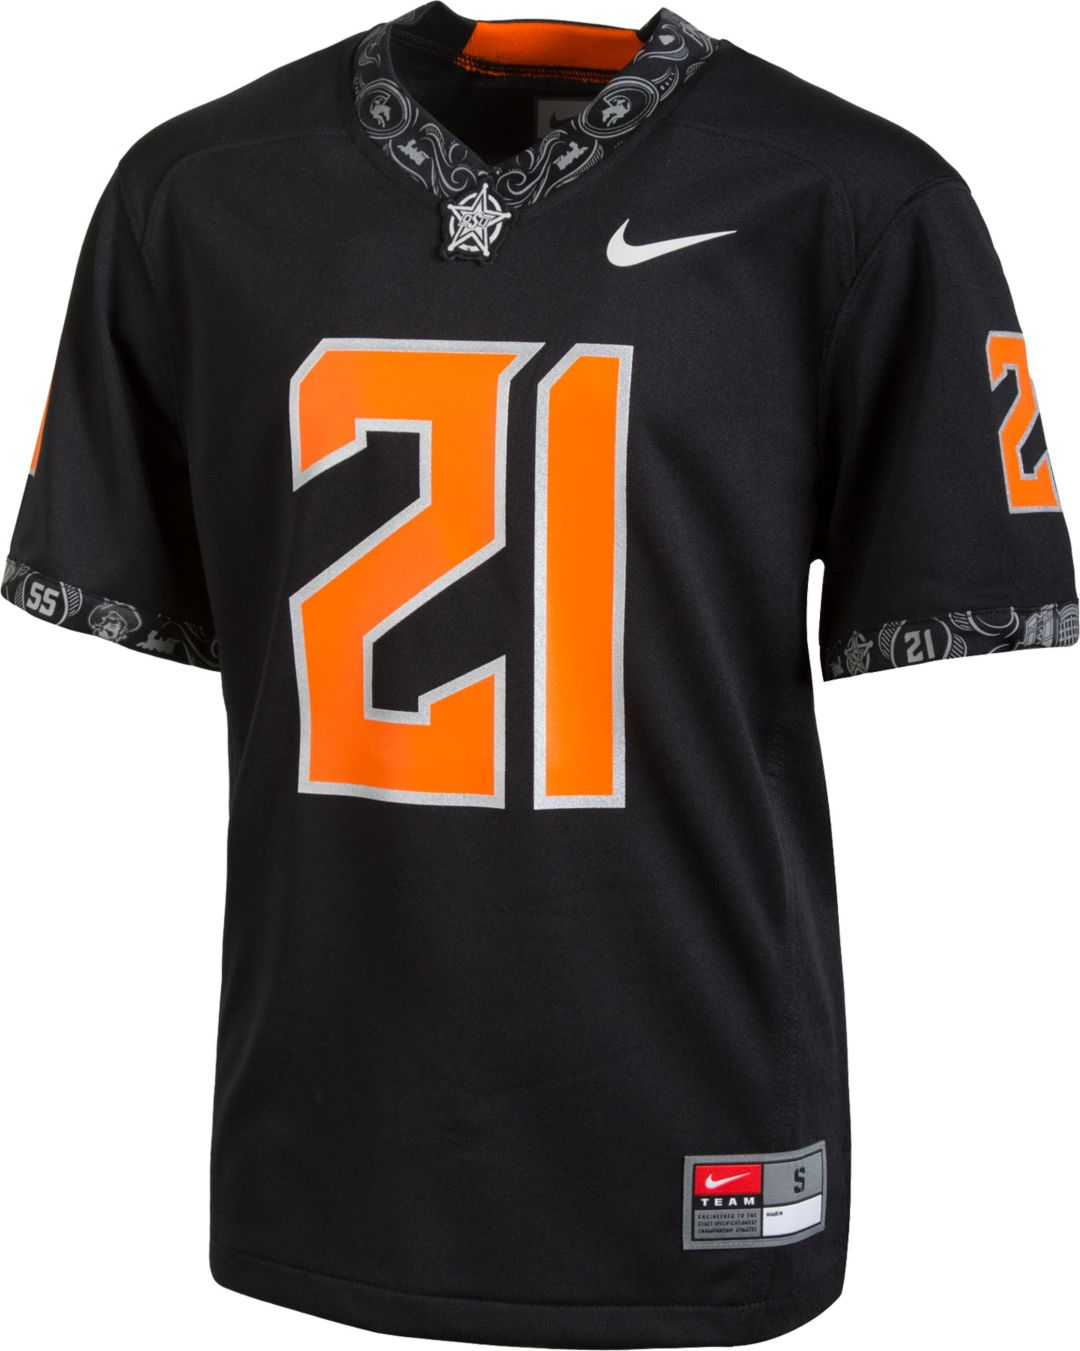 official photos 9971d ec15c Nike Youth Oklahoma State Cowboys #21 Replica Football Black Jersey